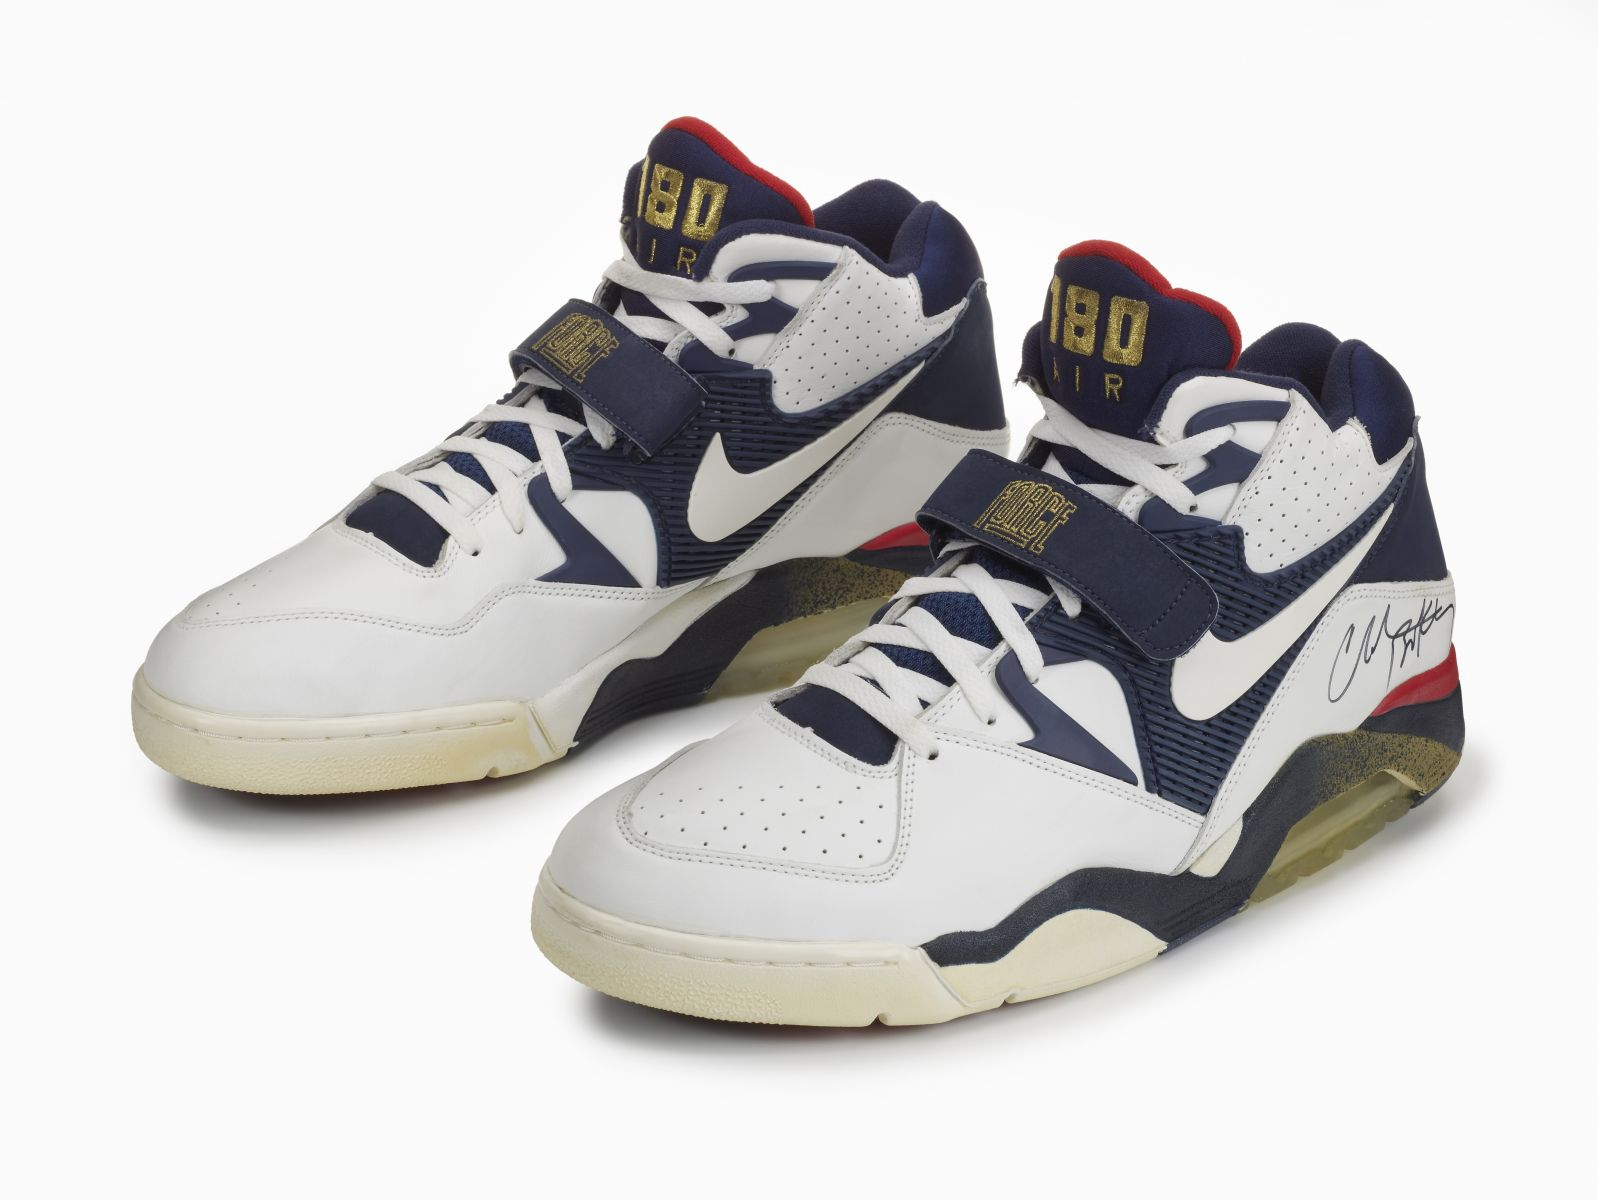 Take a closer look at Sir Charles' Olympic Air Force 180, along with design  sketches by Steve McDonald in the images below.